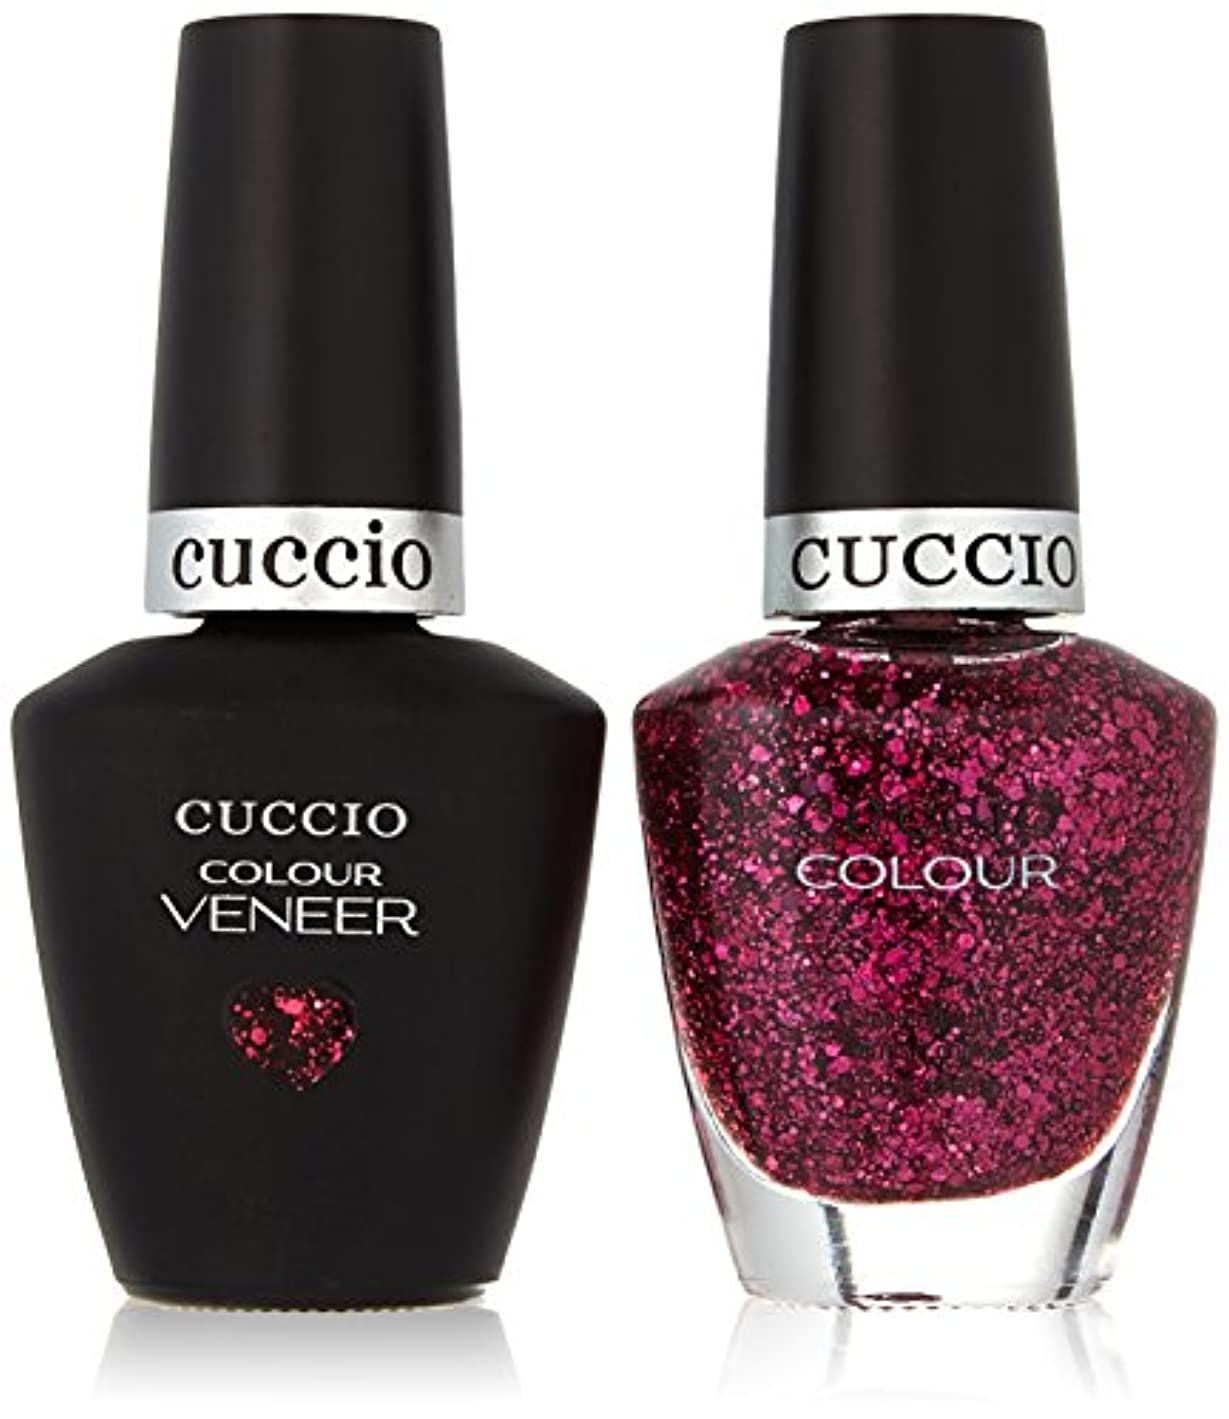 側面くま効率Cuccio MatchMakers Veneer & Lacquer - Fever of Love - 0.43oz/13ml Each